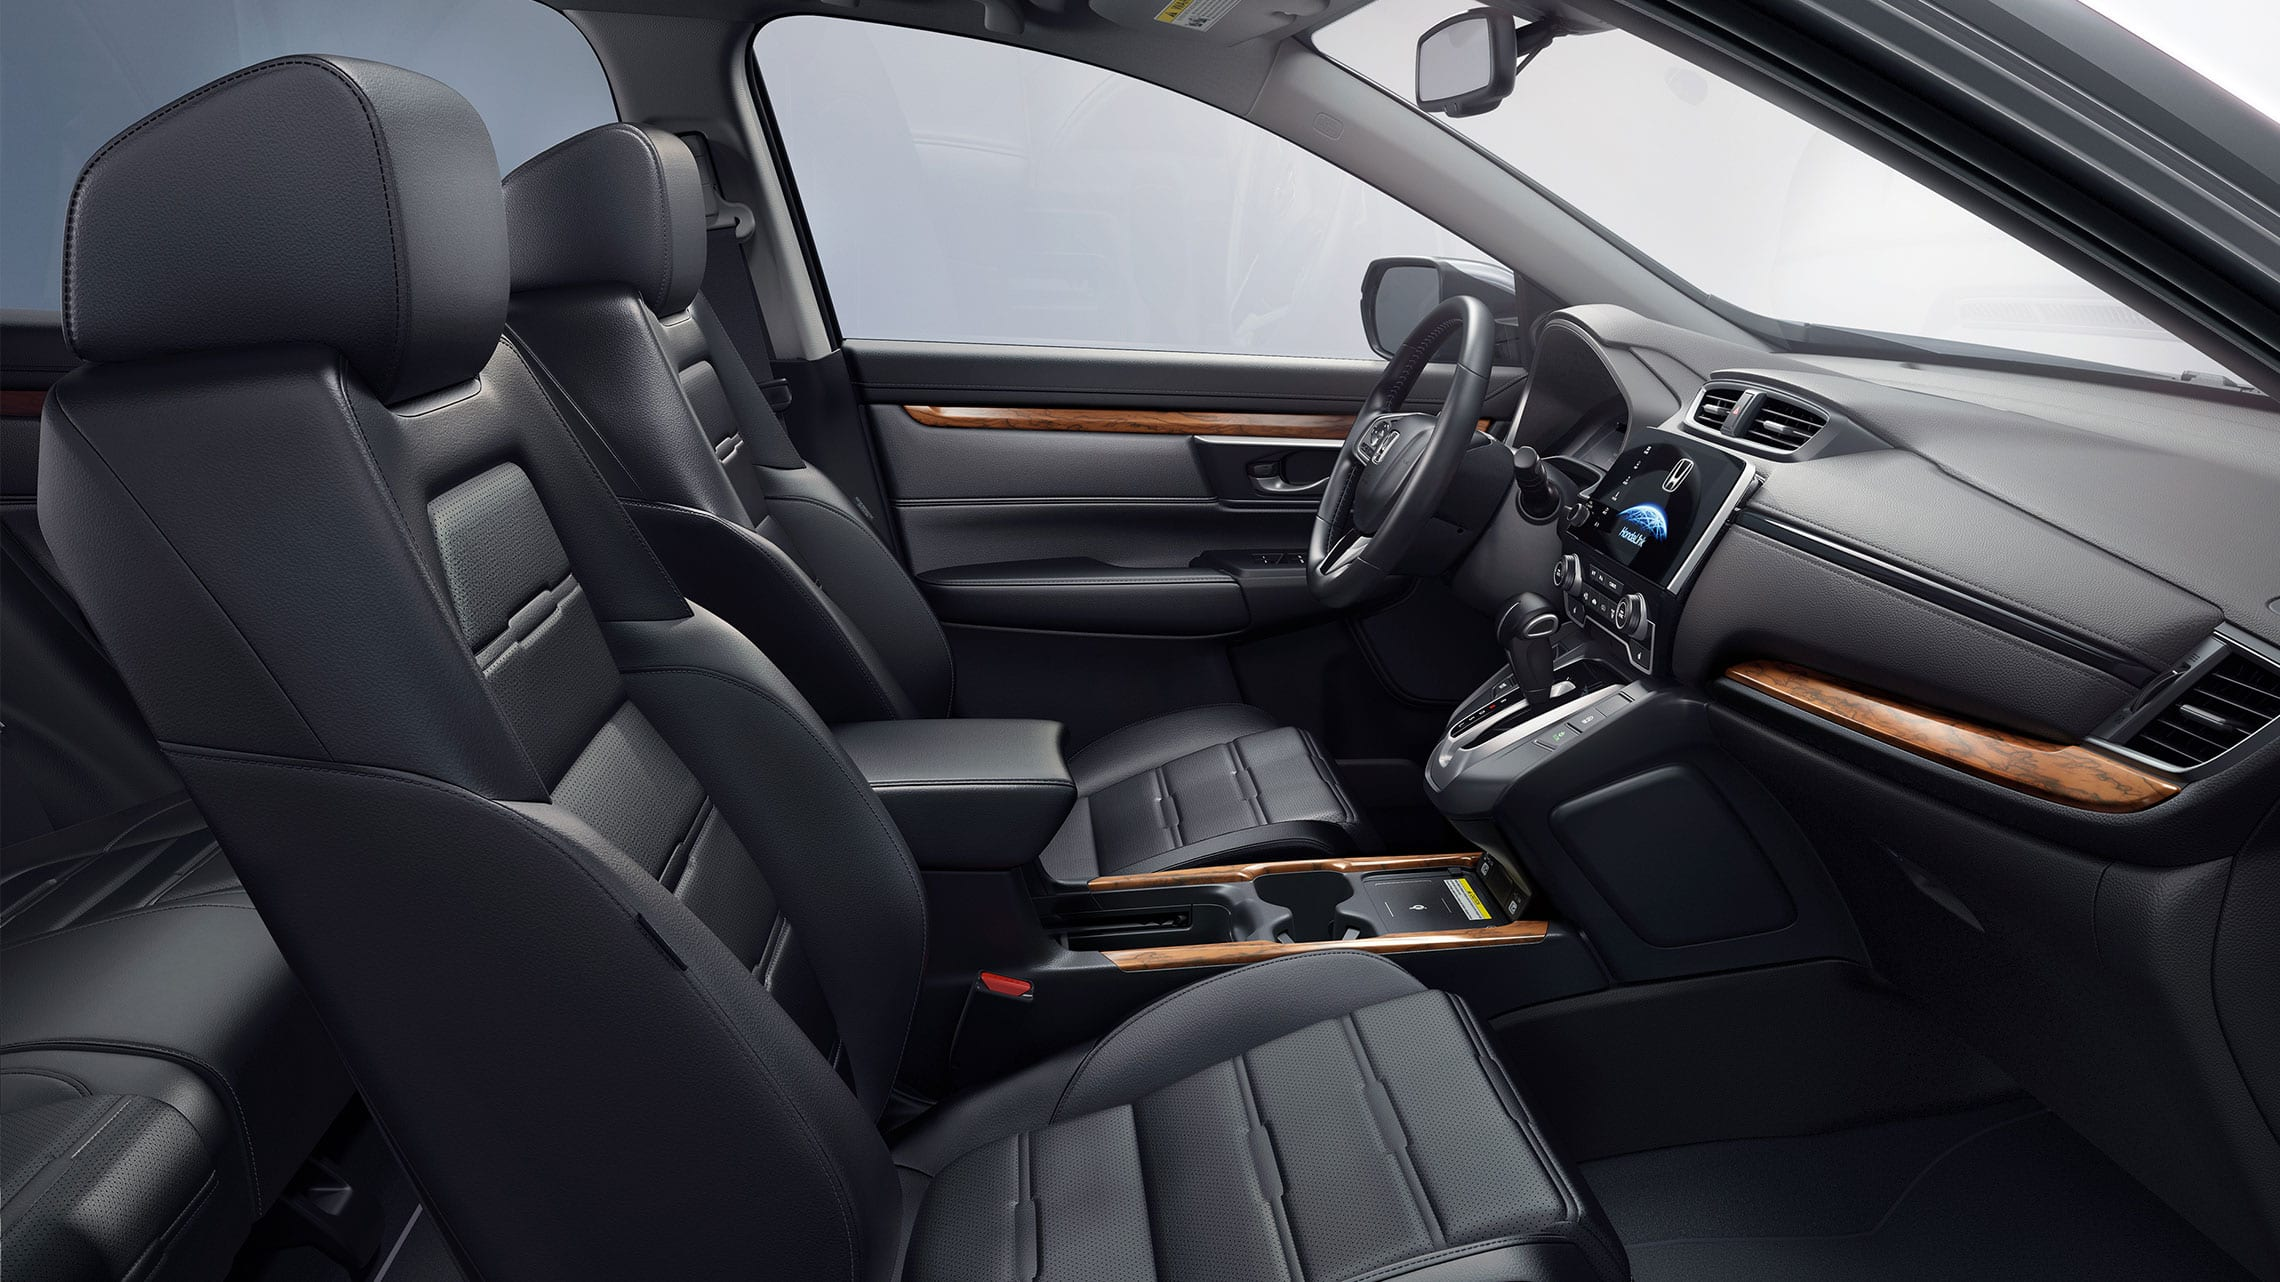 Interior view of 2020 Honda CR-V Touring with leather-trimmed interior.